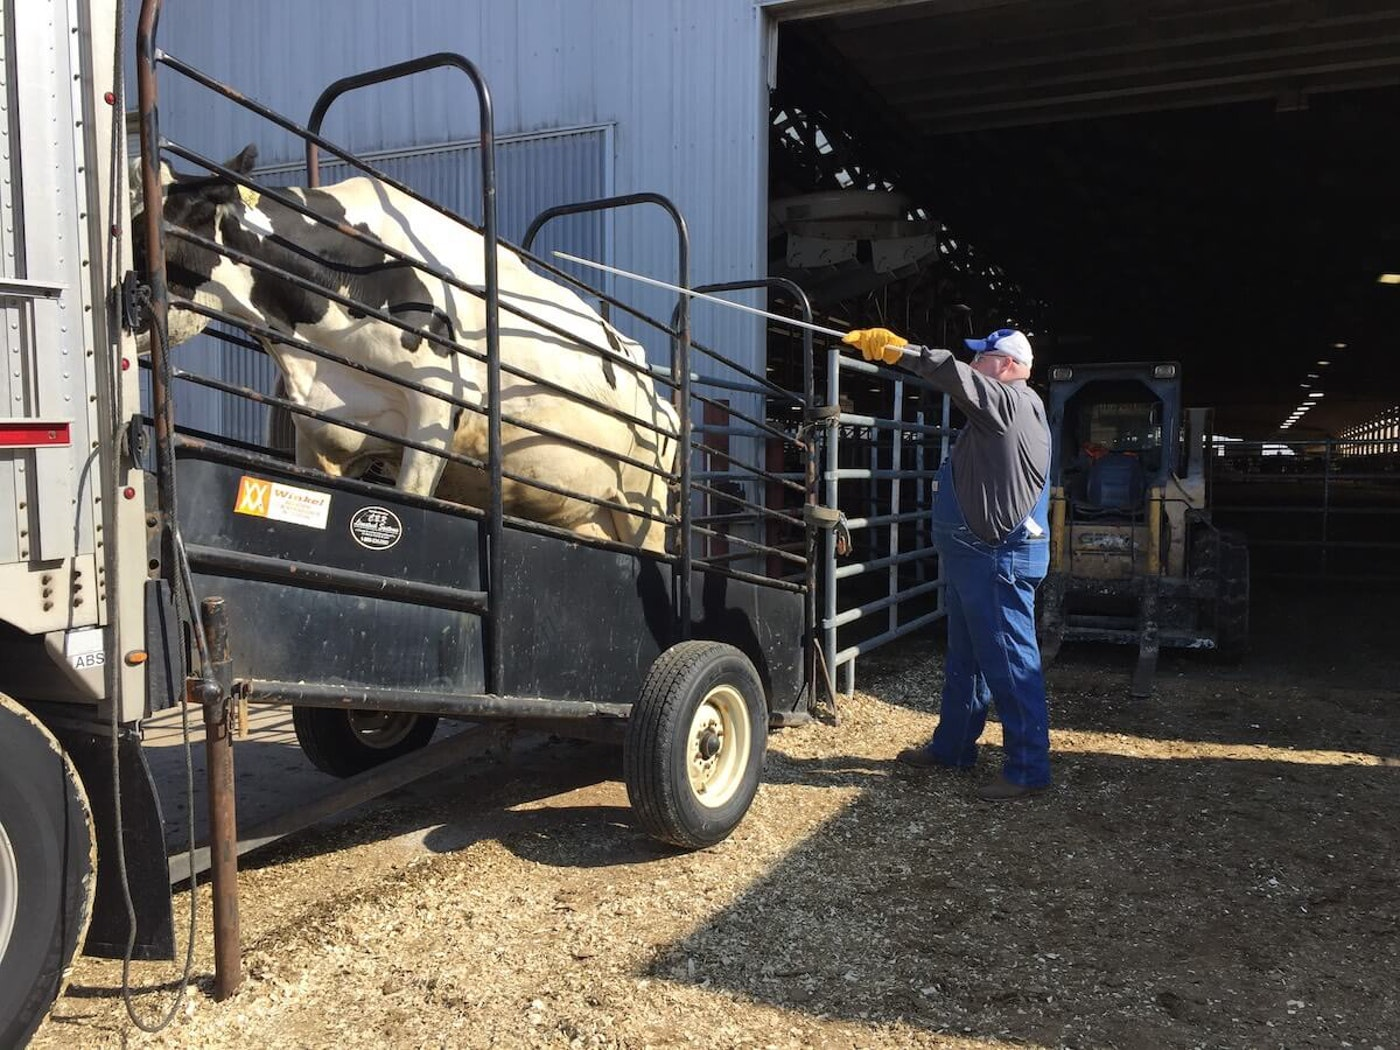 A worker prods a cow up a ramp and into a semi-truck trailer Monday at Paul Adams' farm. Most of the 600-plus cows in his dairy herd were shipped to a large dairy farm in Texas. (Photo by Julian Emerson)